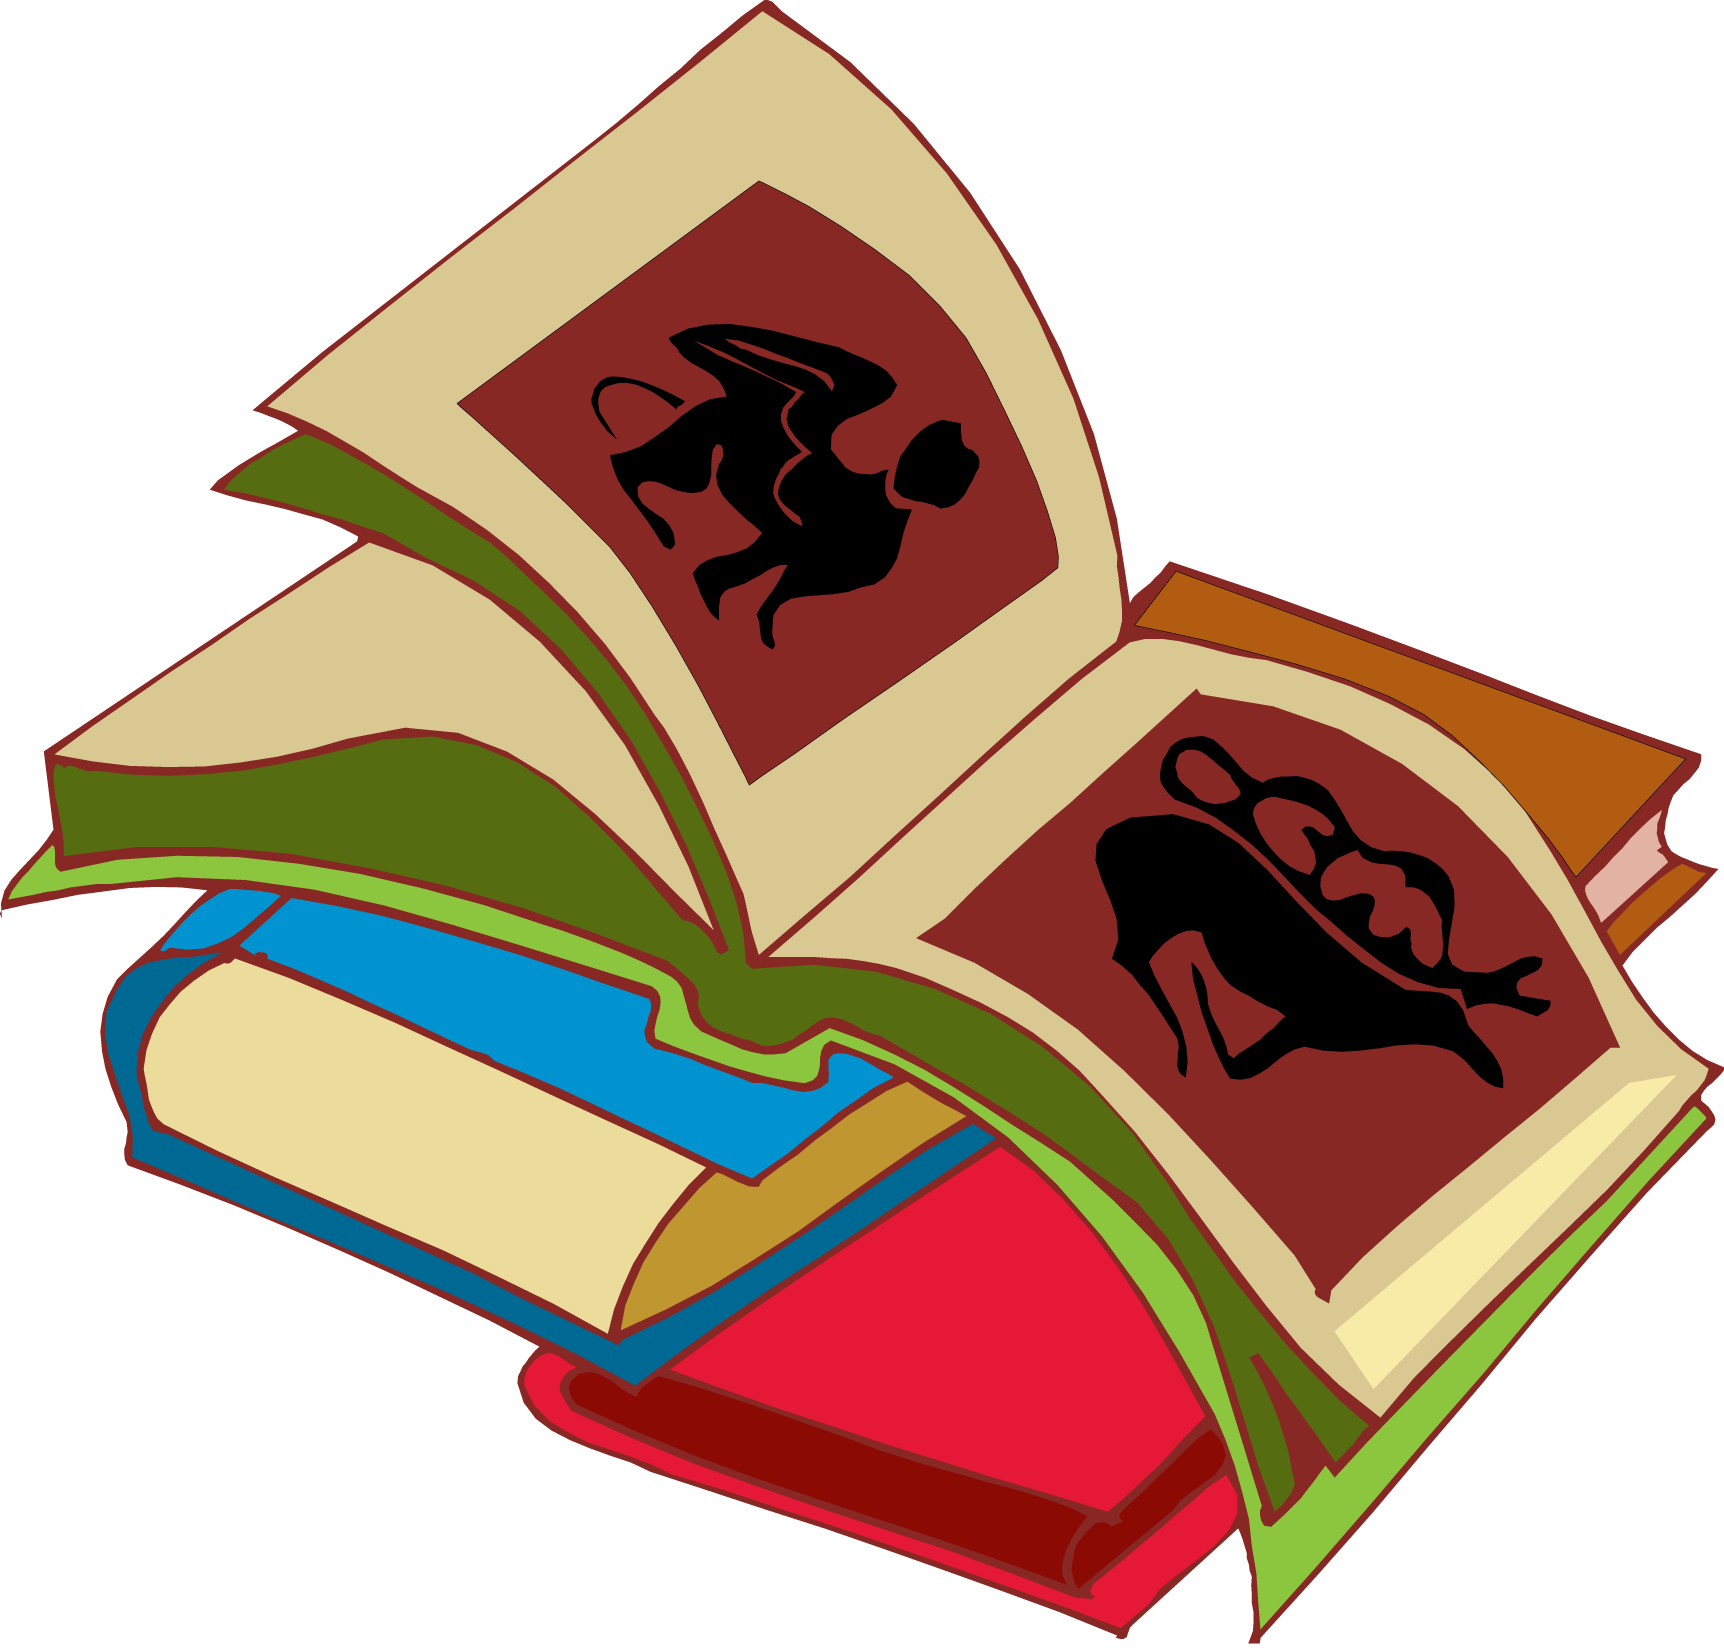 Stacks Of Books Images